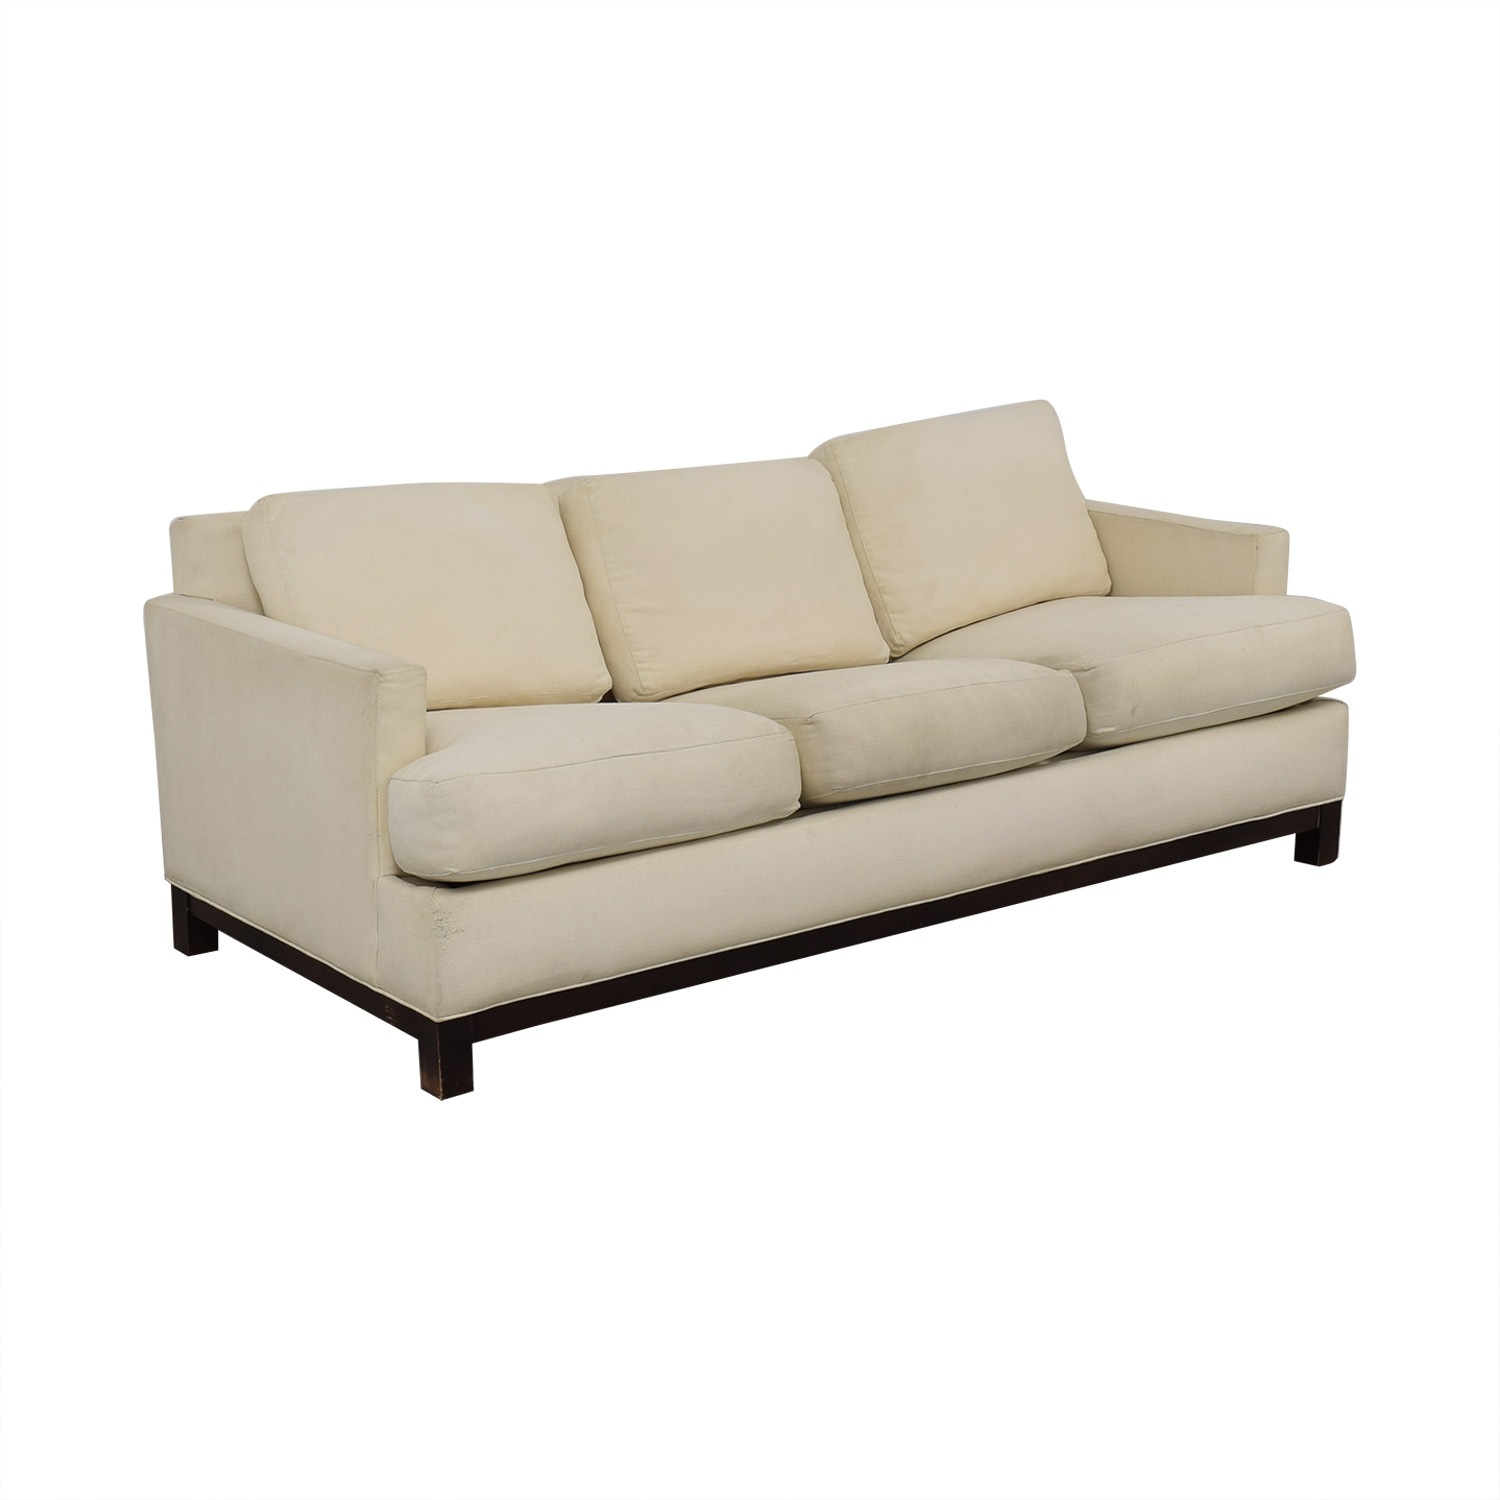 Rowe Furniture Rowe Furniture Queen Sleeper Sofa nj